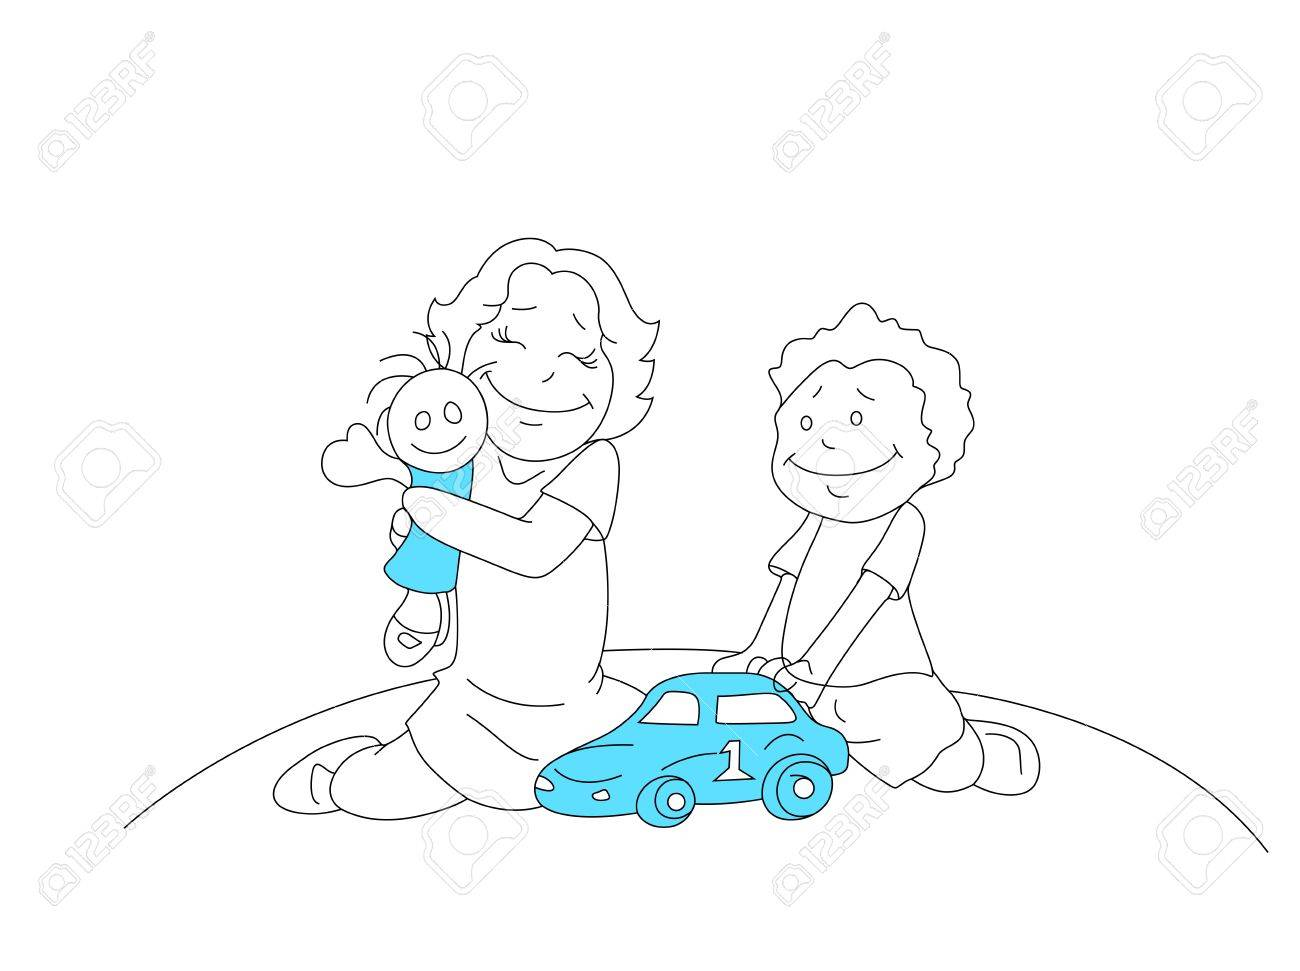 Drawing Of Kids Playing With Toys Royalty Free Cliparts Vectors